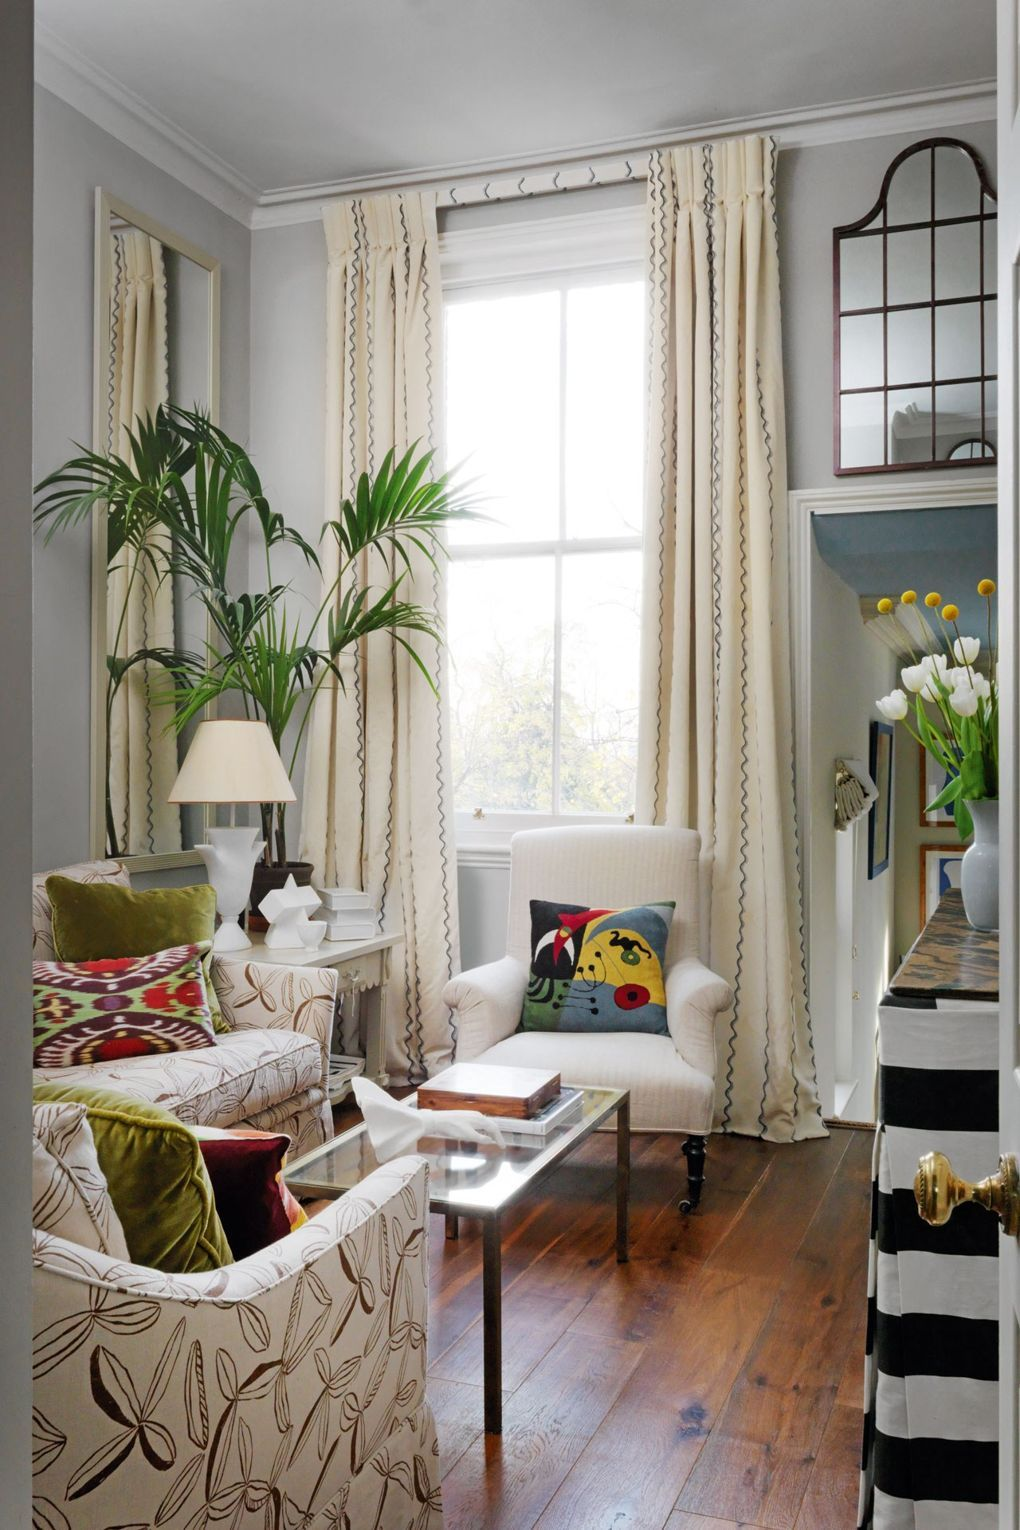 95 ways to decorate a flat | FR Style | Pinterest